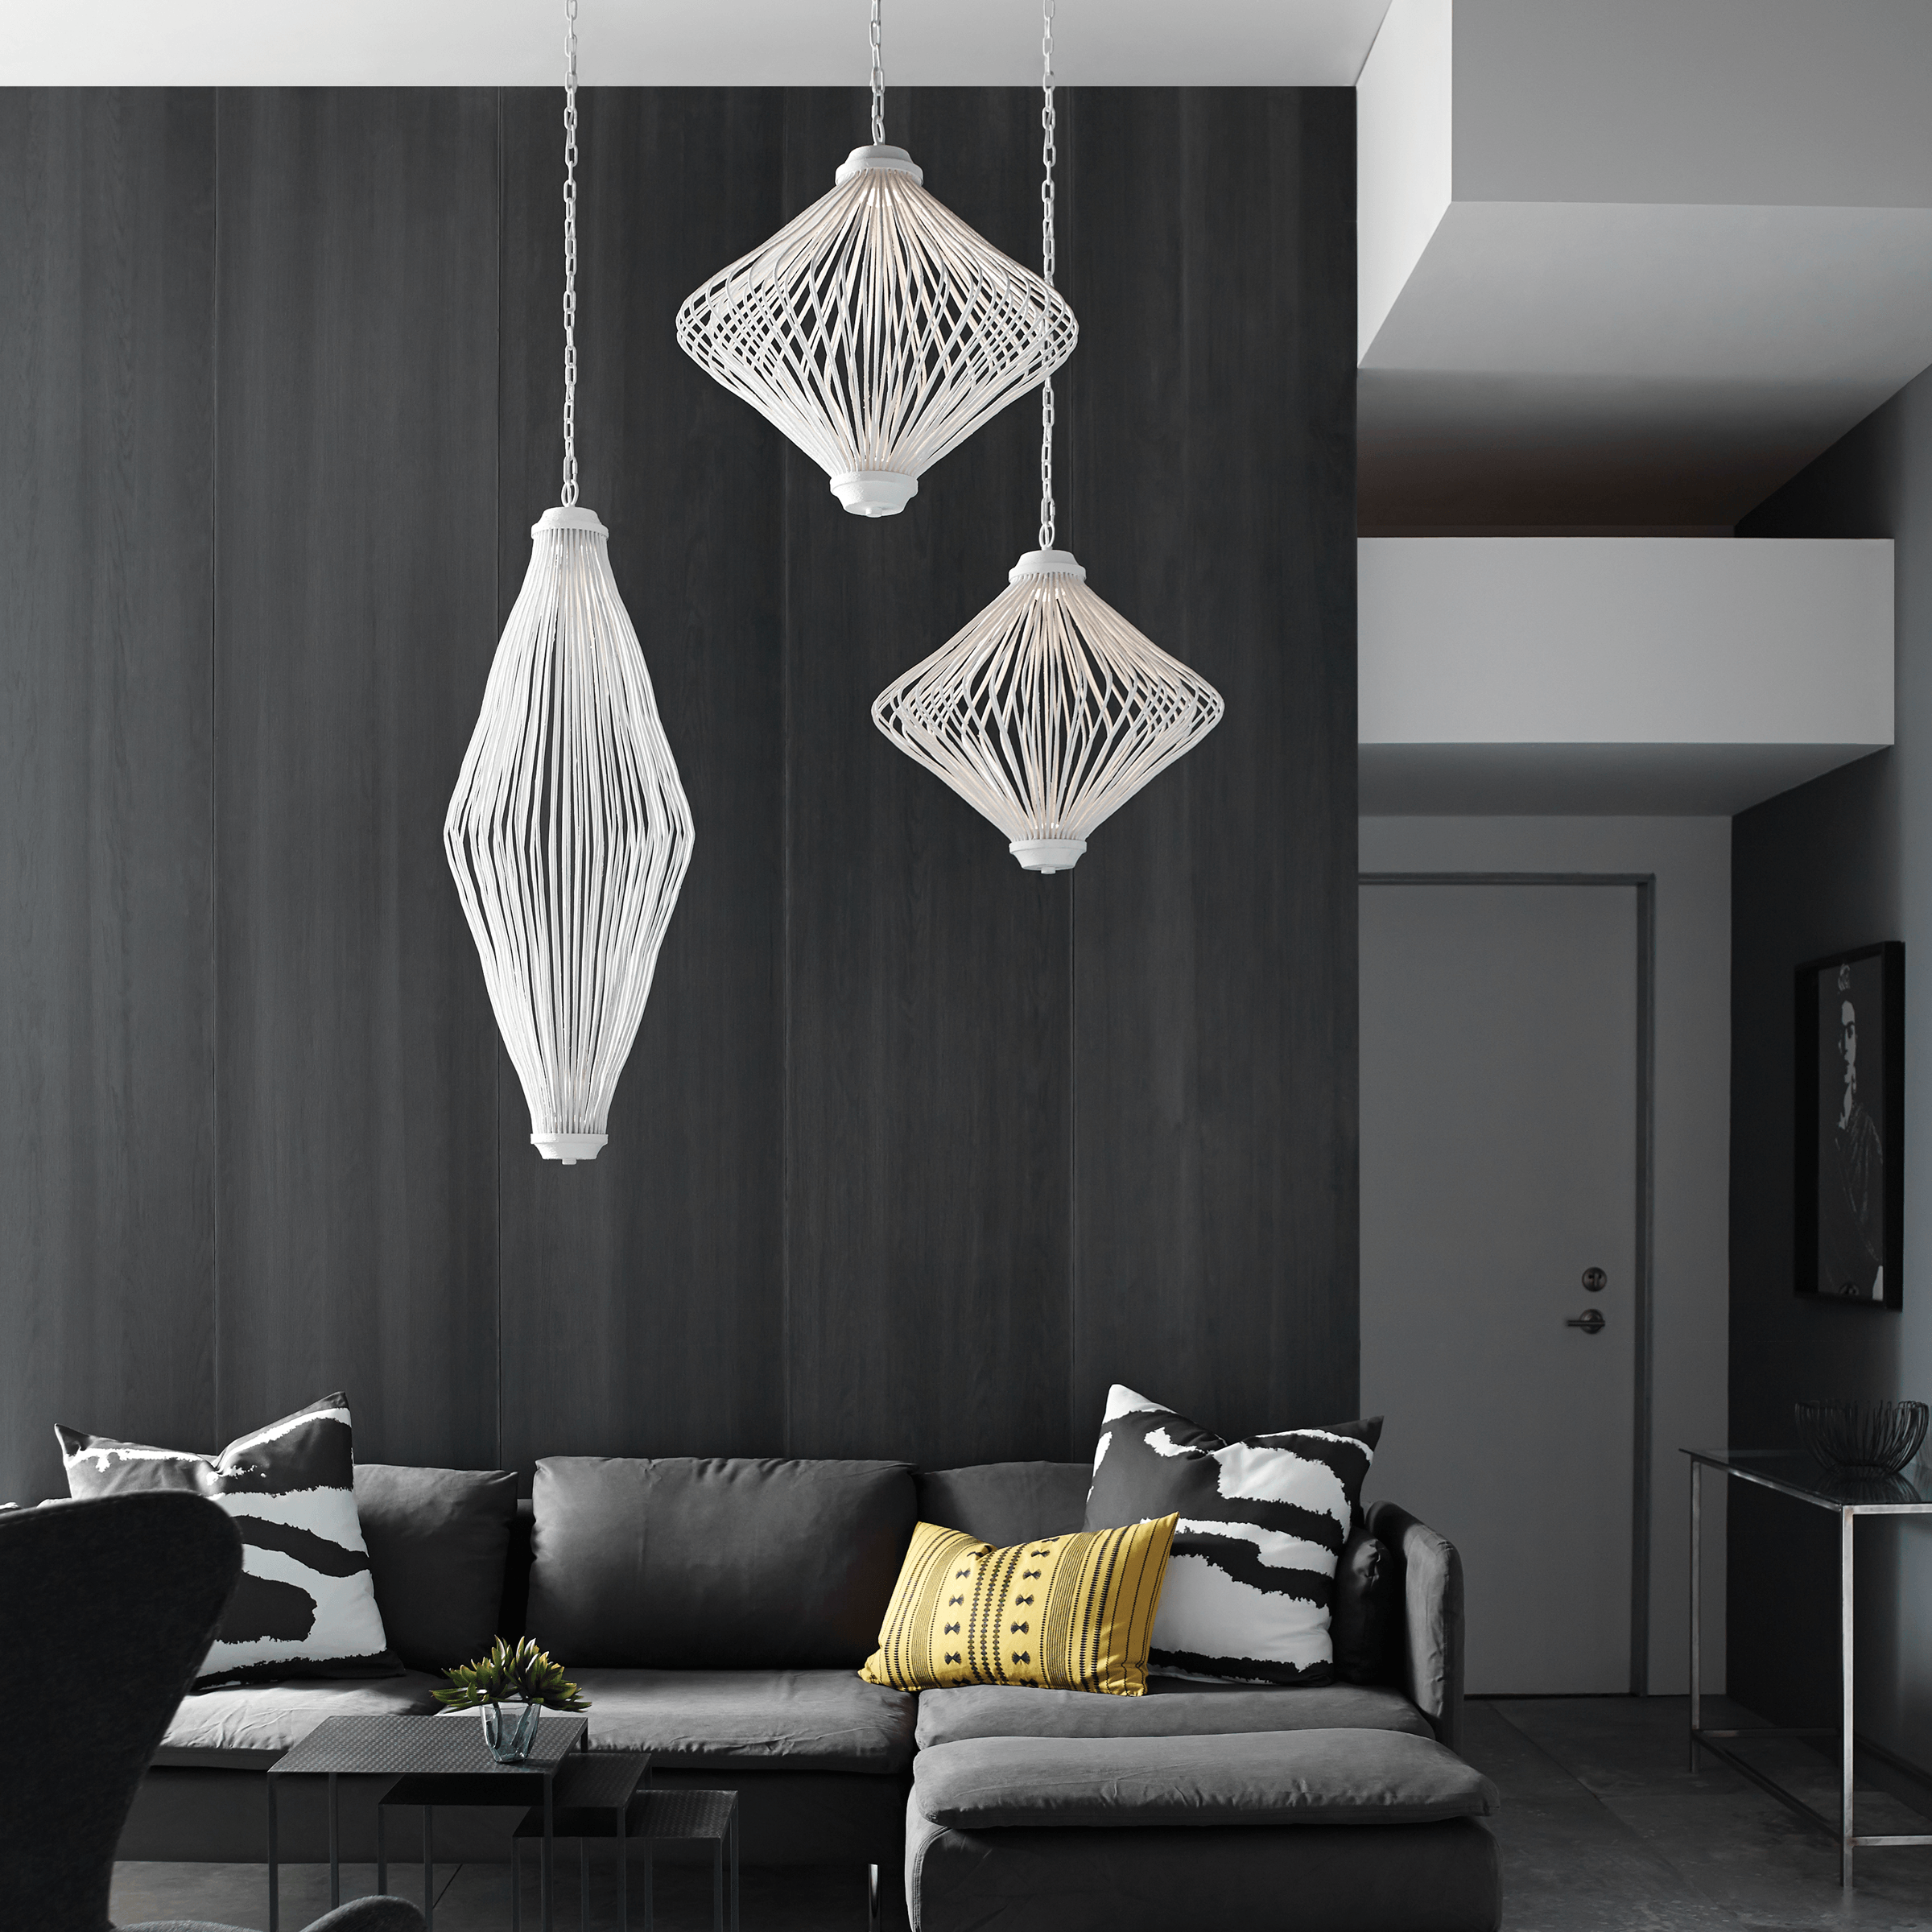 A cluster of three Kellen chandelier pendants by Feiss bring a fun yet elegant edge to this black and white living room.